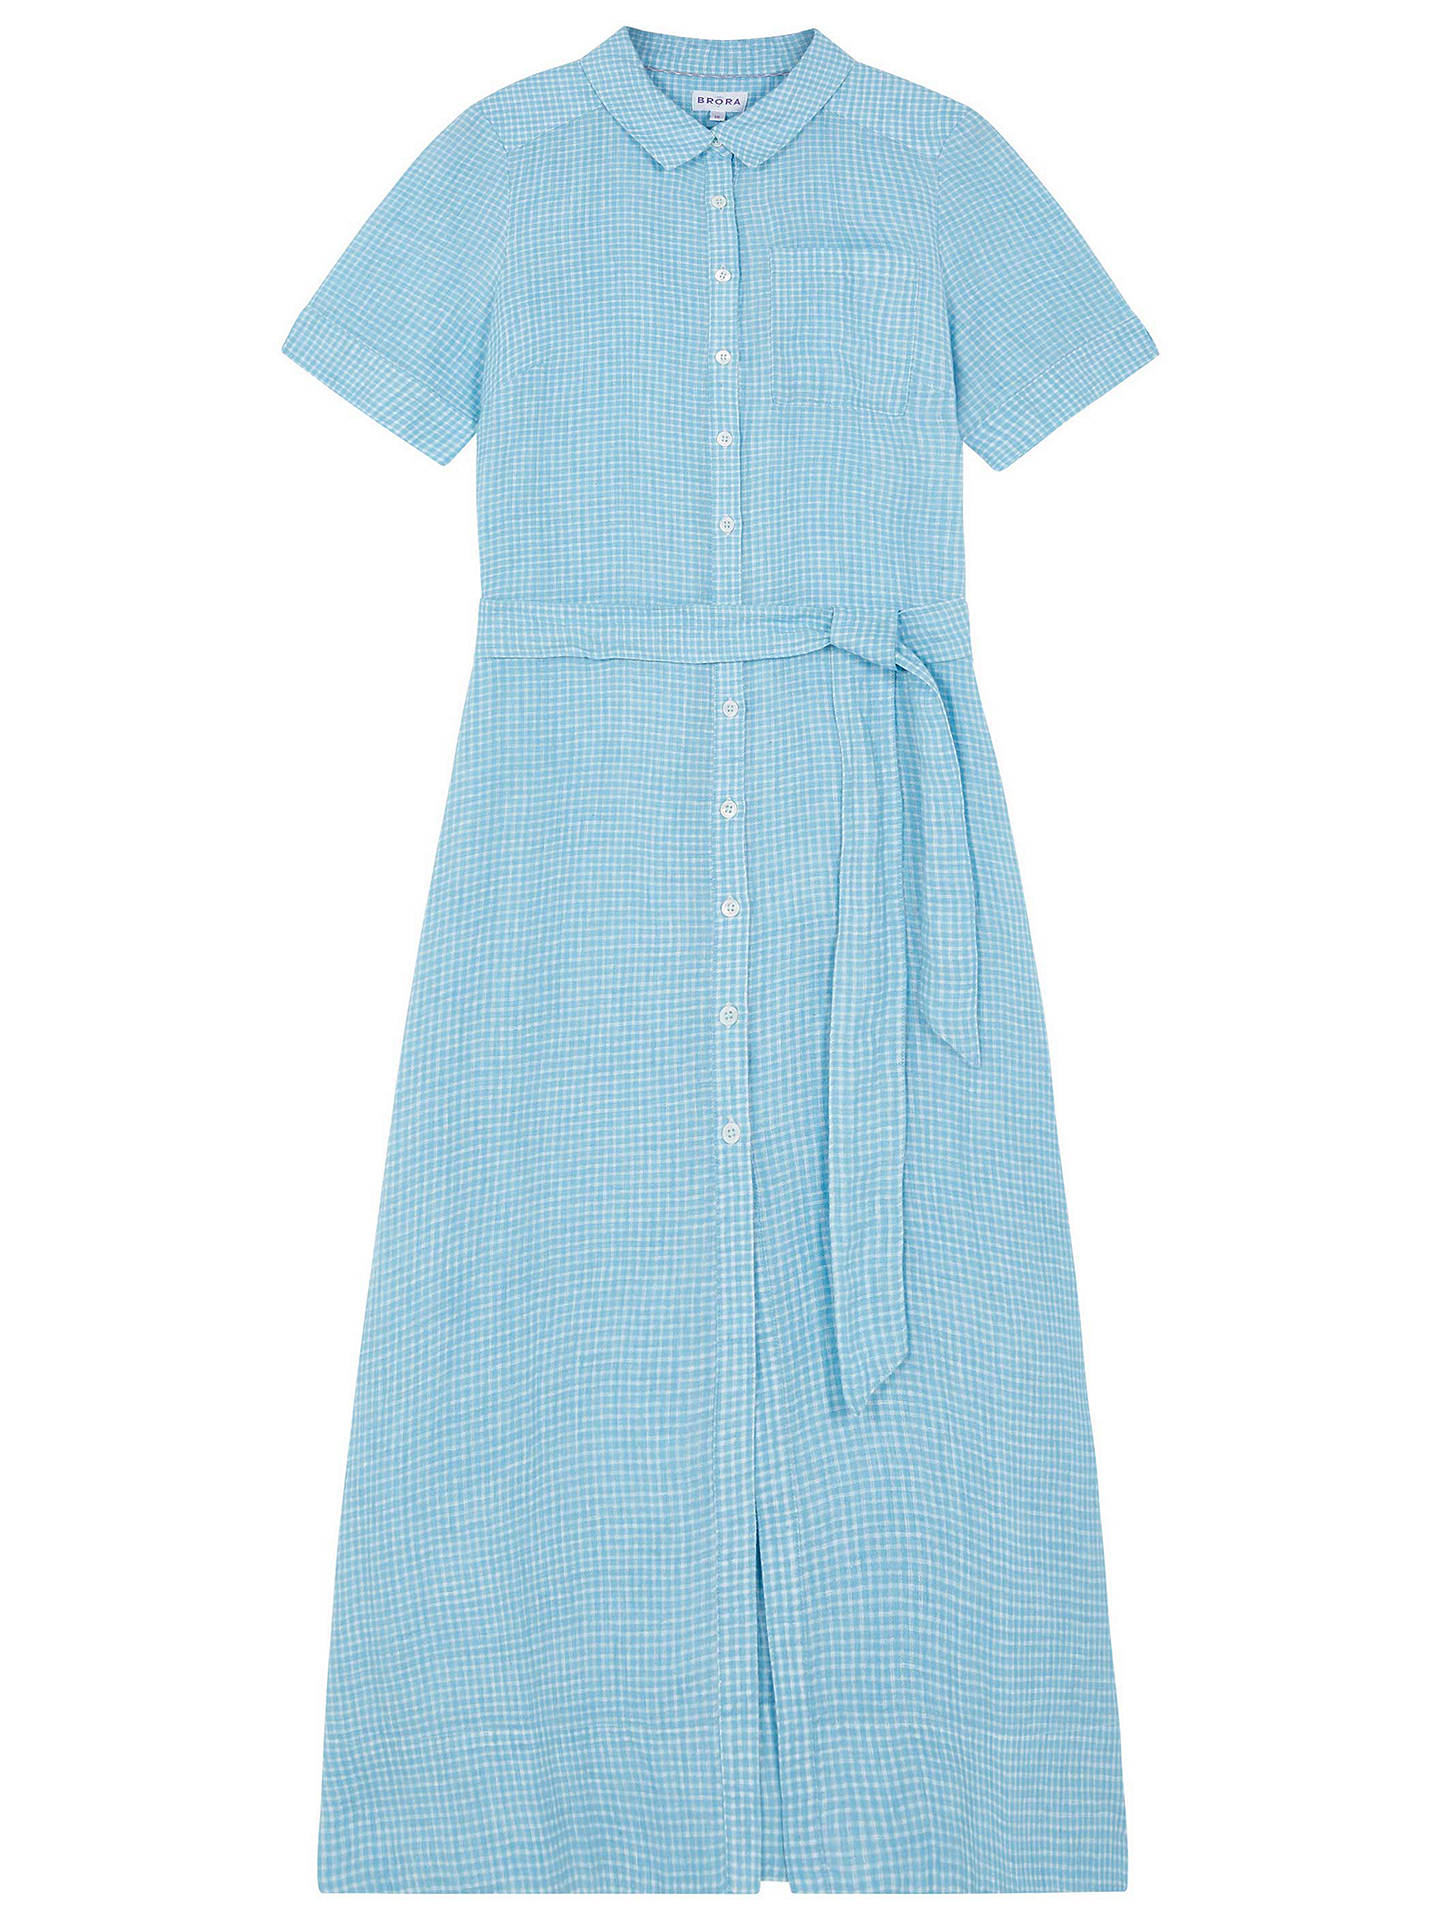 BuyBrora Checked Linen Shirt Dress, Mineral/White, 6 Online at johnlewis.com